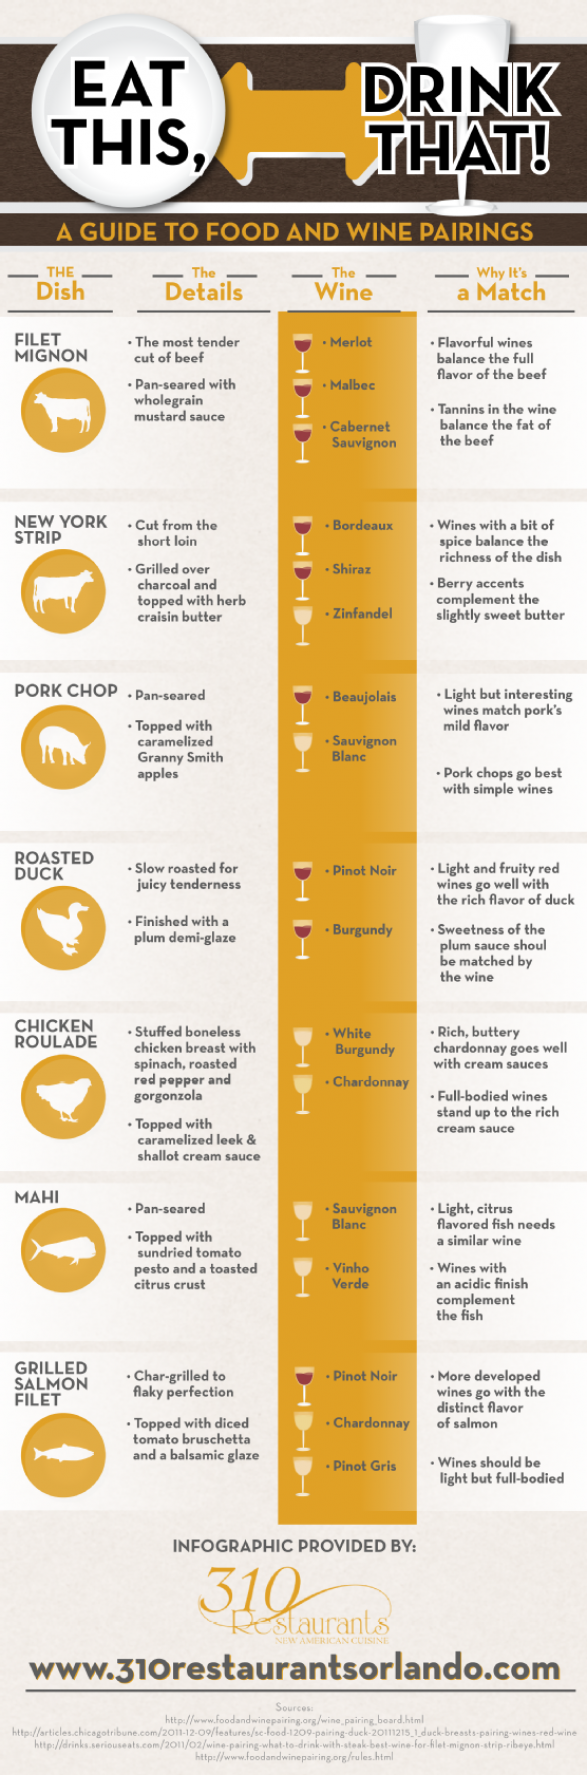 Eat This, Drink That! A Guide to Food and Wine Pairings